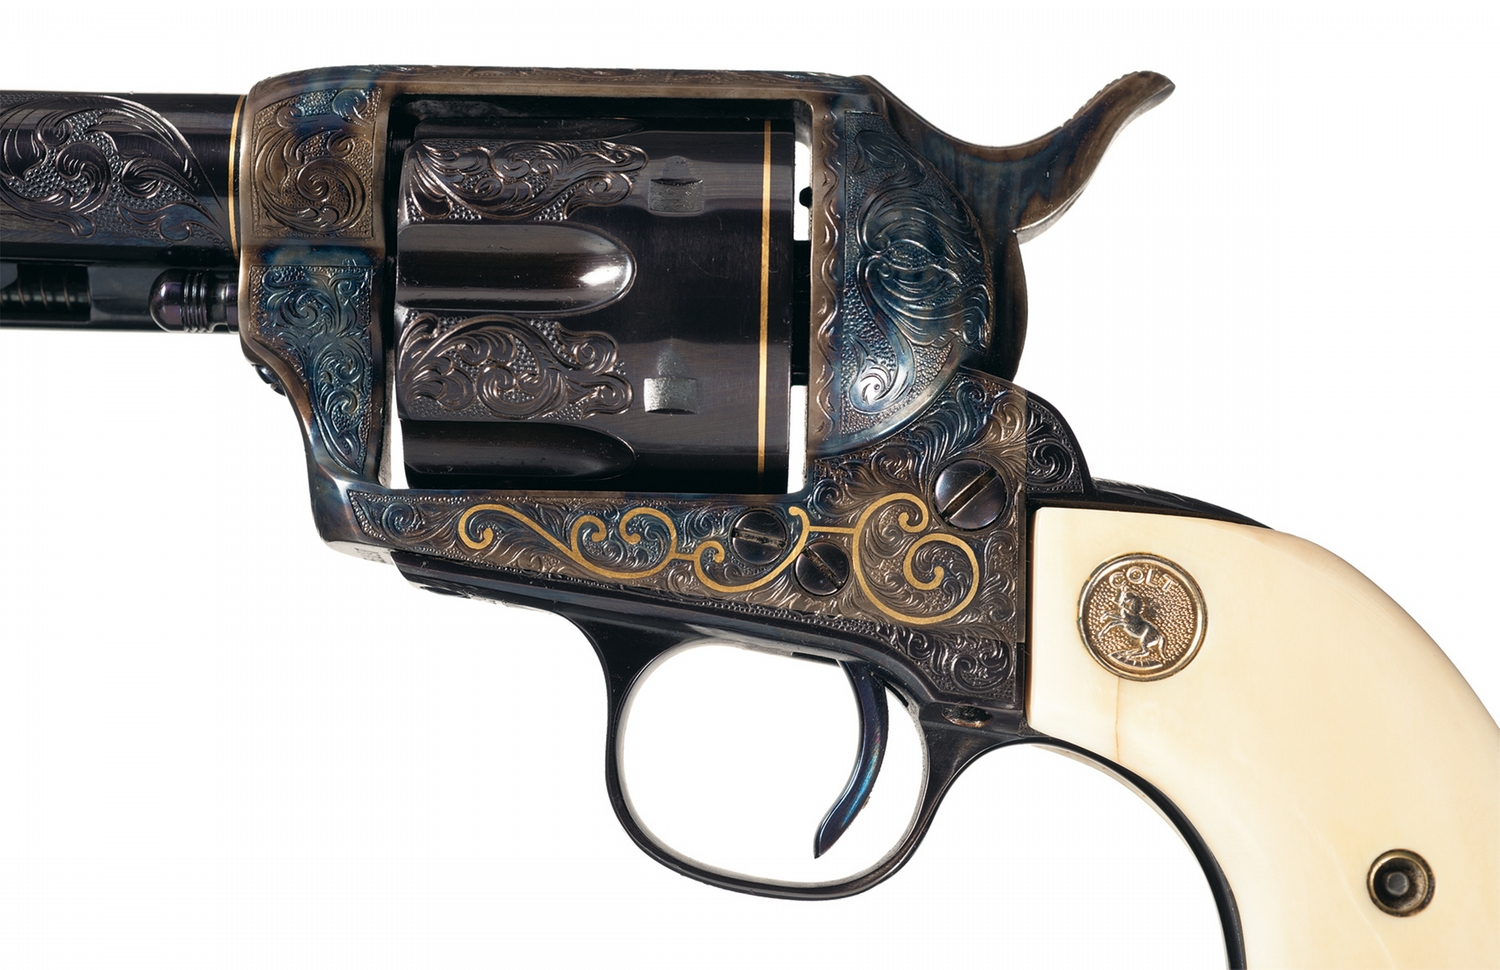 I-765 Receipt Notice Word Custom Engraved And Gold Inlaid Black Powder Colt Single Action  Invoice Number Sample Word with How To Get Uber Receipt Pdf Custom Engraved And Gold Inlaid Black Powder Colt Single Action Army  Revolver With Ivory Grips Business Invoice Software Free Word